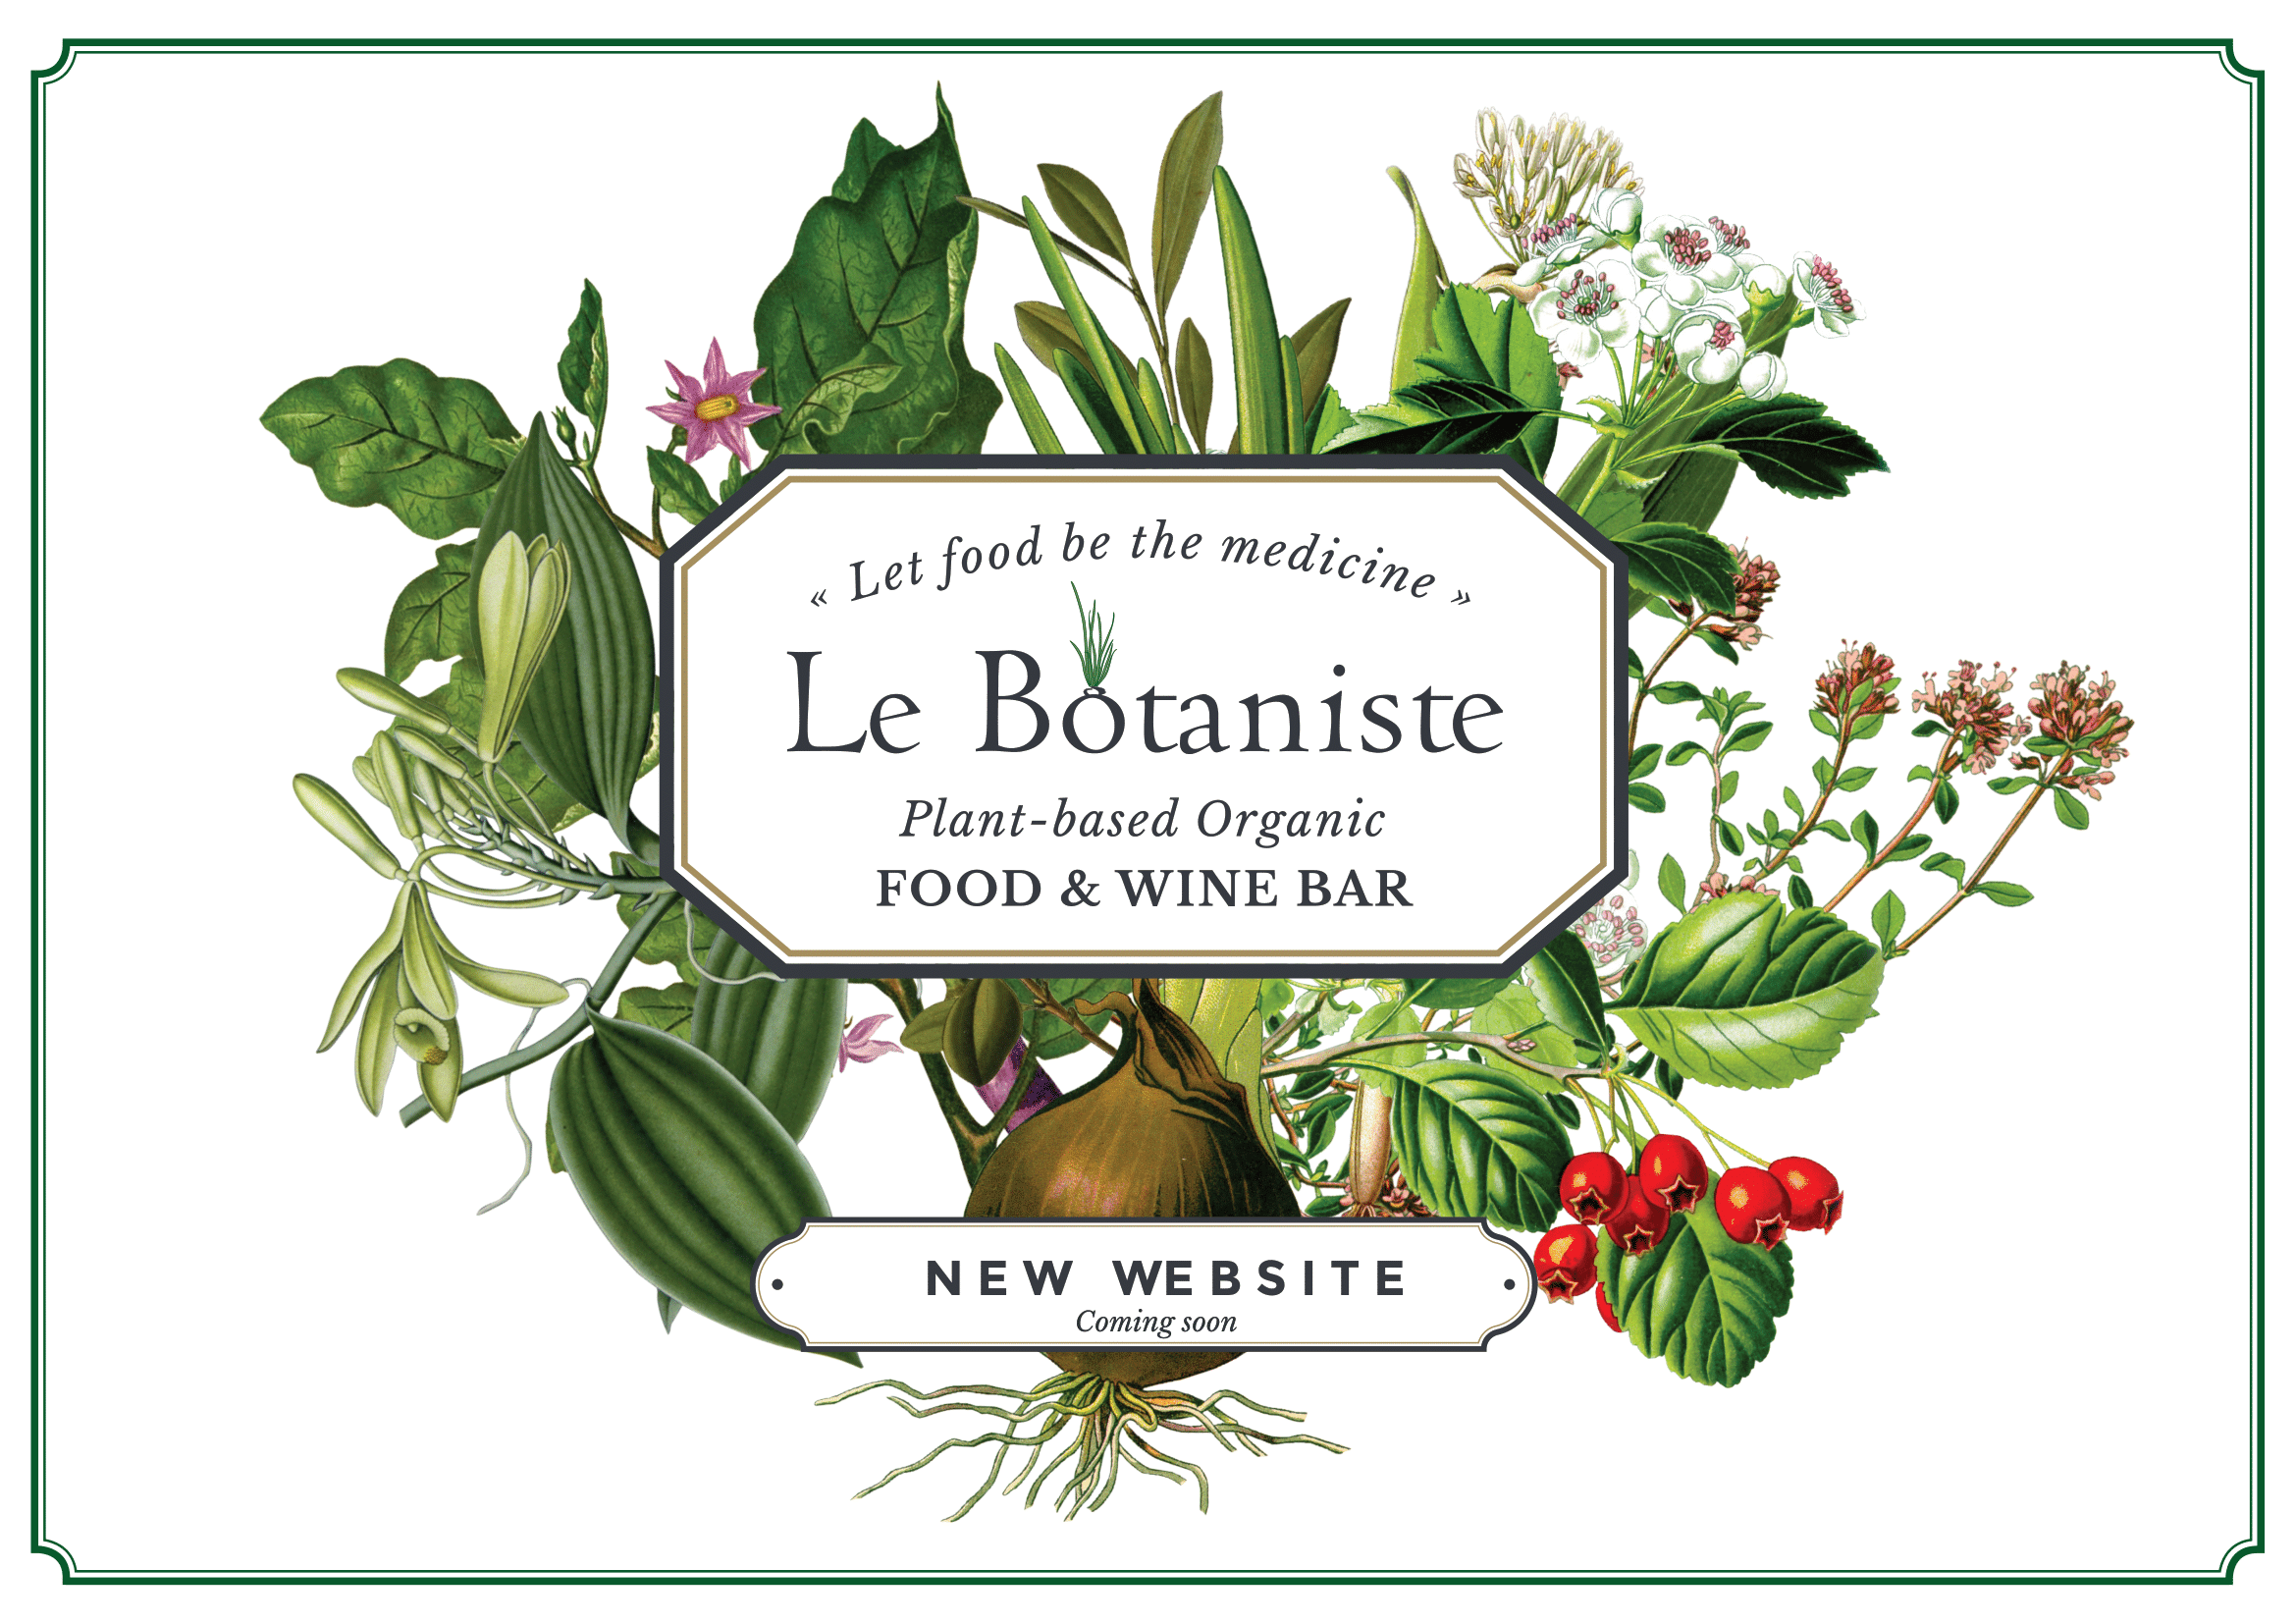 Le Botaniste Coming Soon